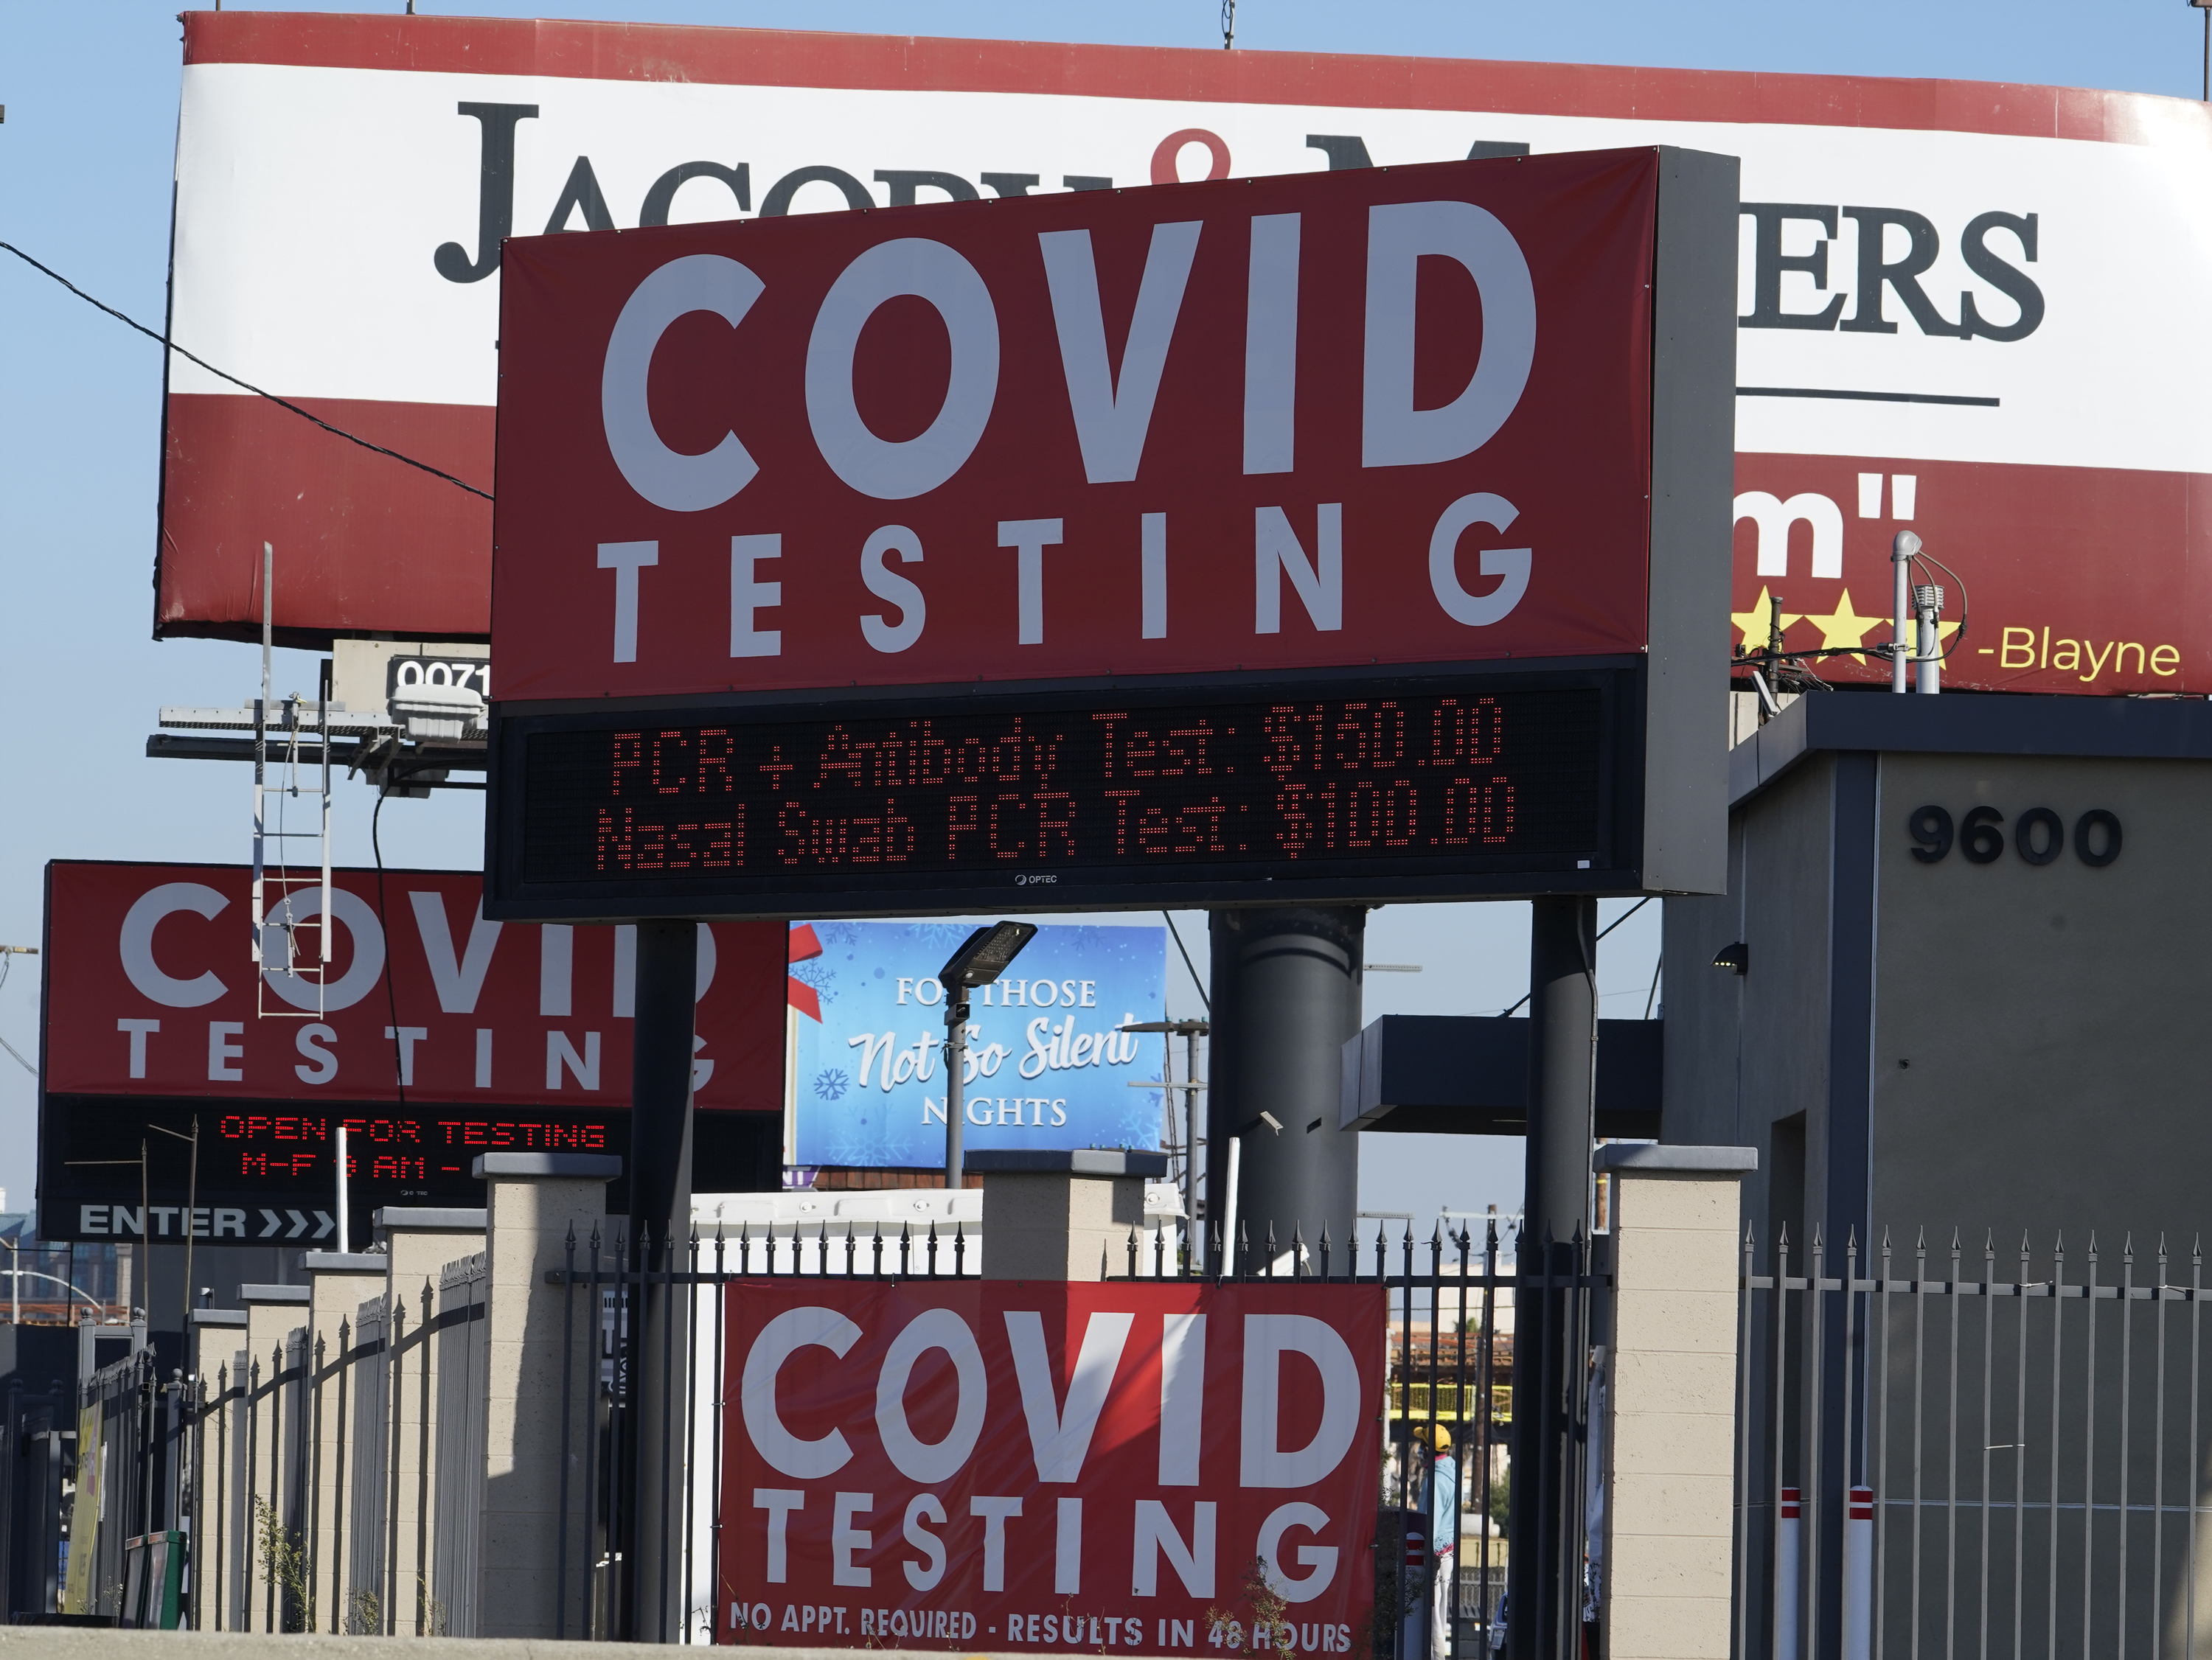 Advertisements for Covid-19 testing ares posted outside Los Angeles International Airport in Los Angeles, Friday, on Nov. 13, 2020.